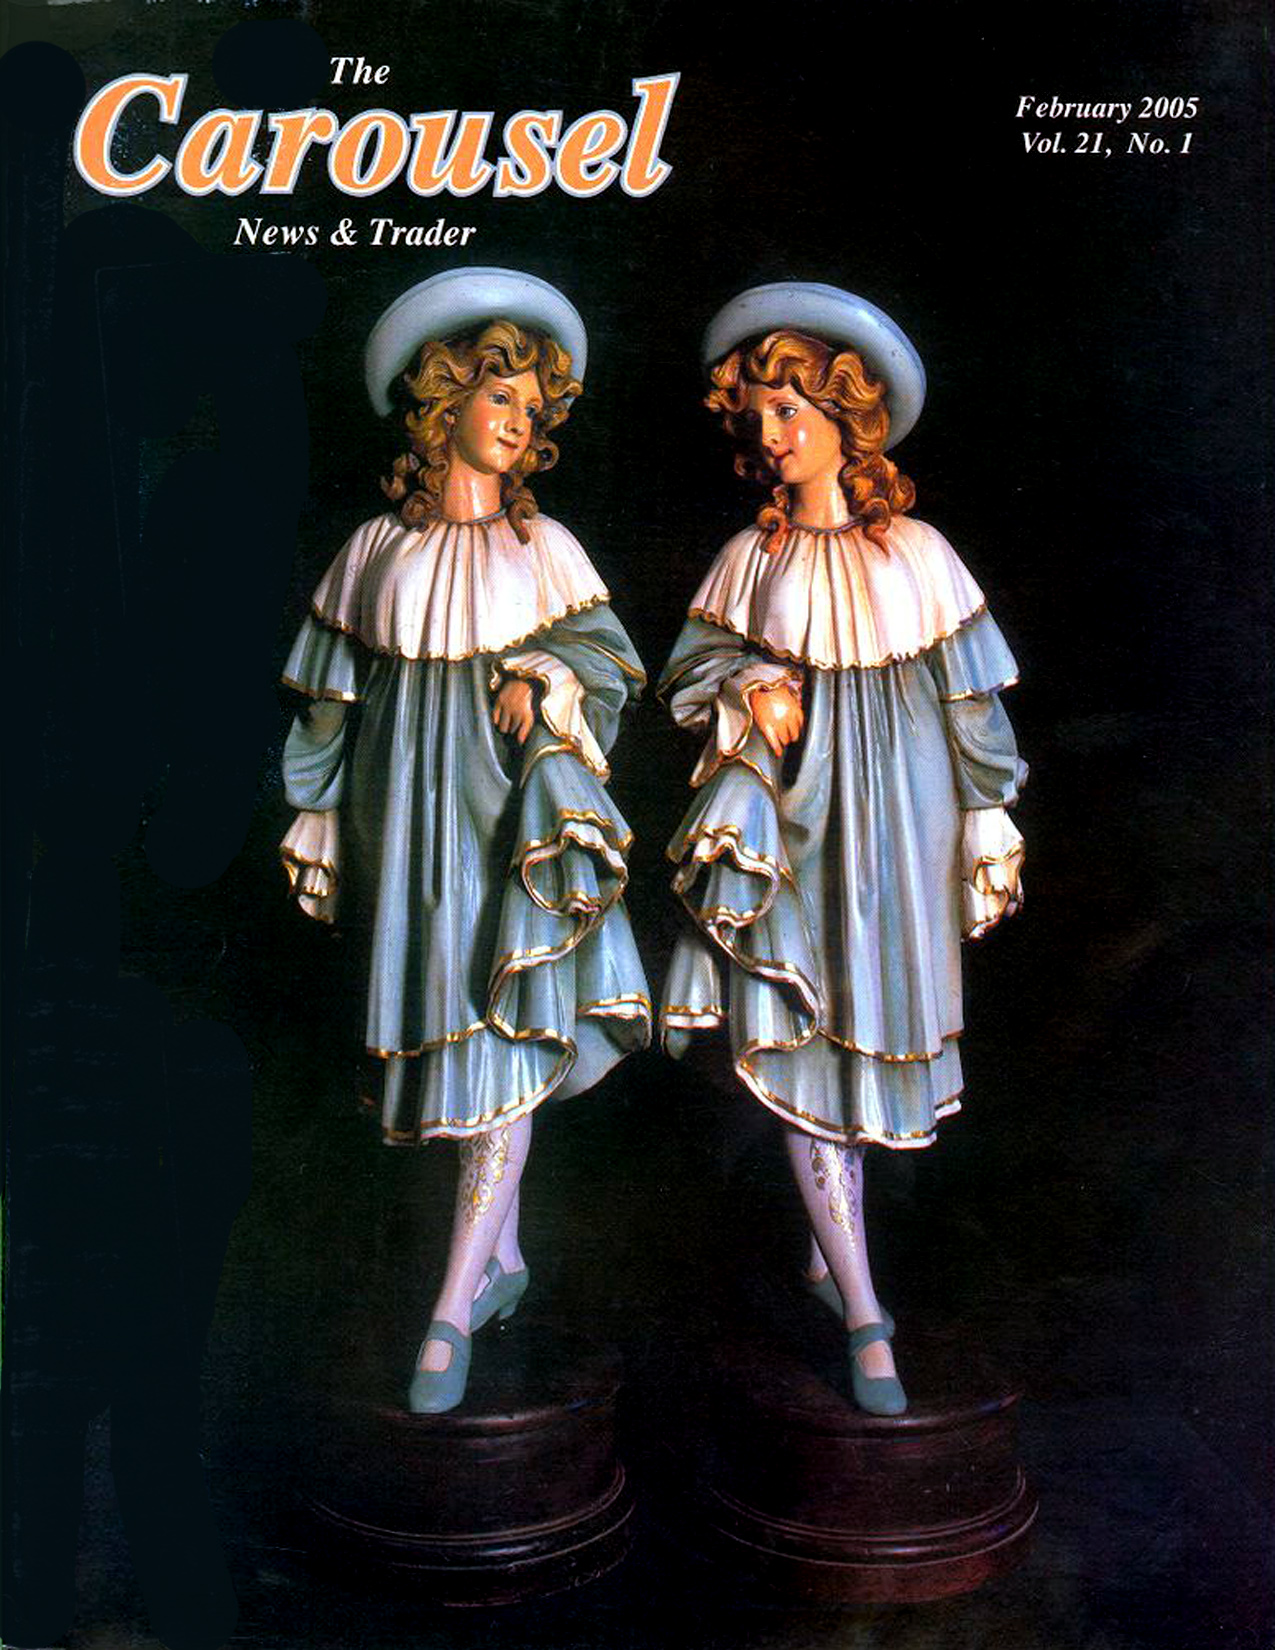 Carousel-news-cover-2_2005-Antique-Gavioli-band-organ-figures